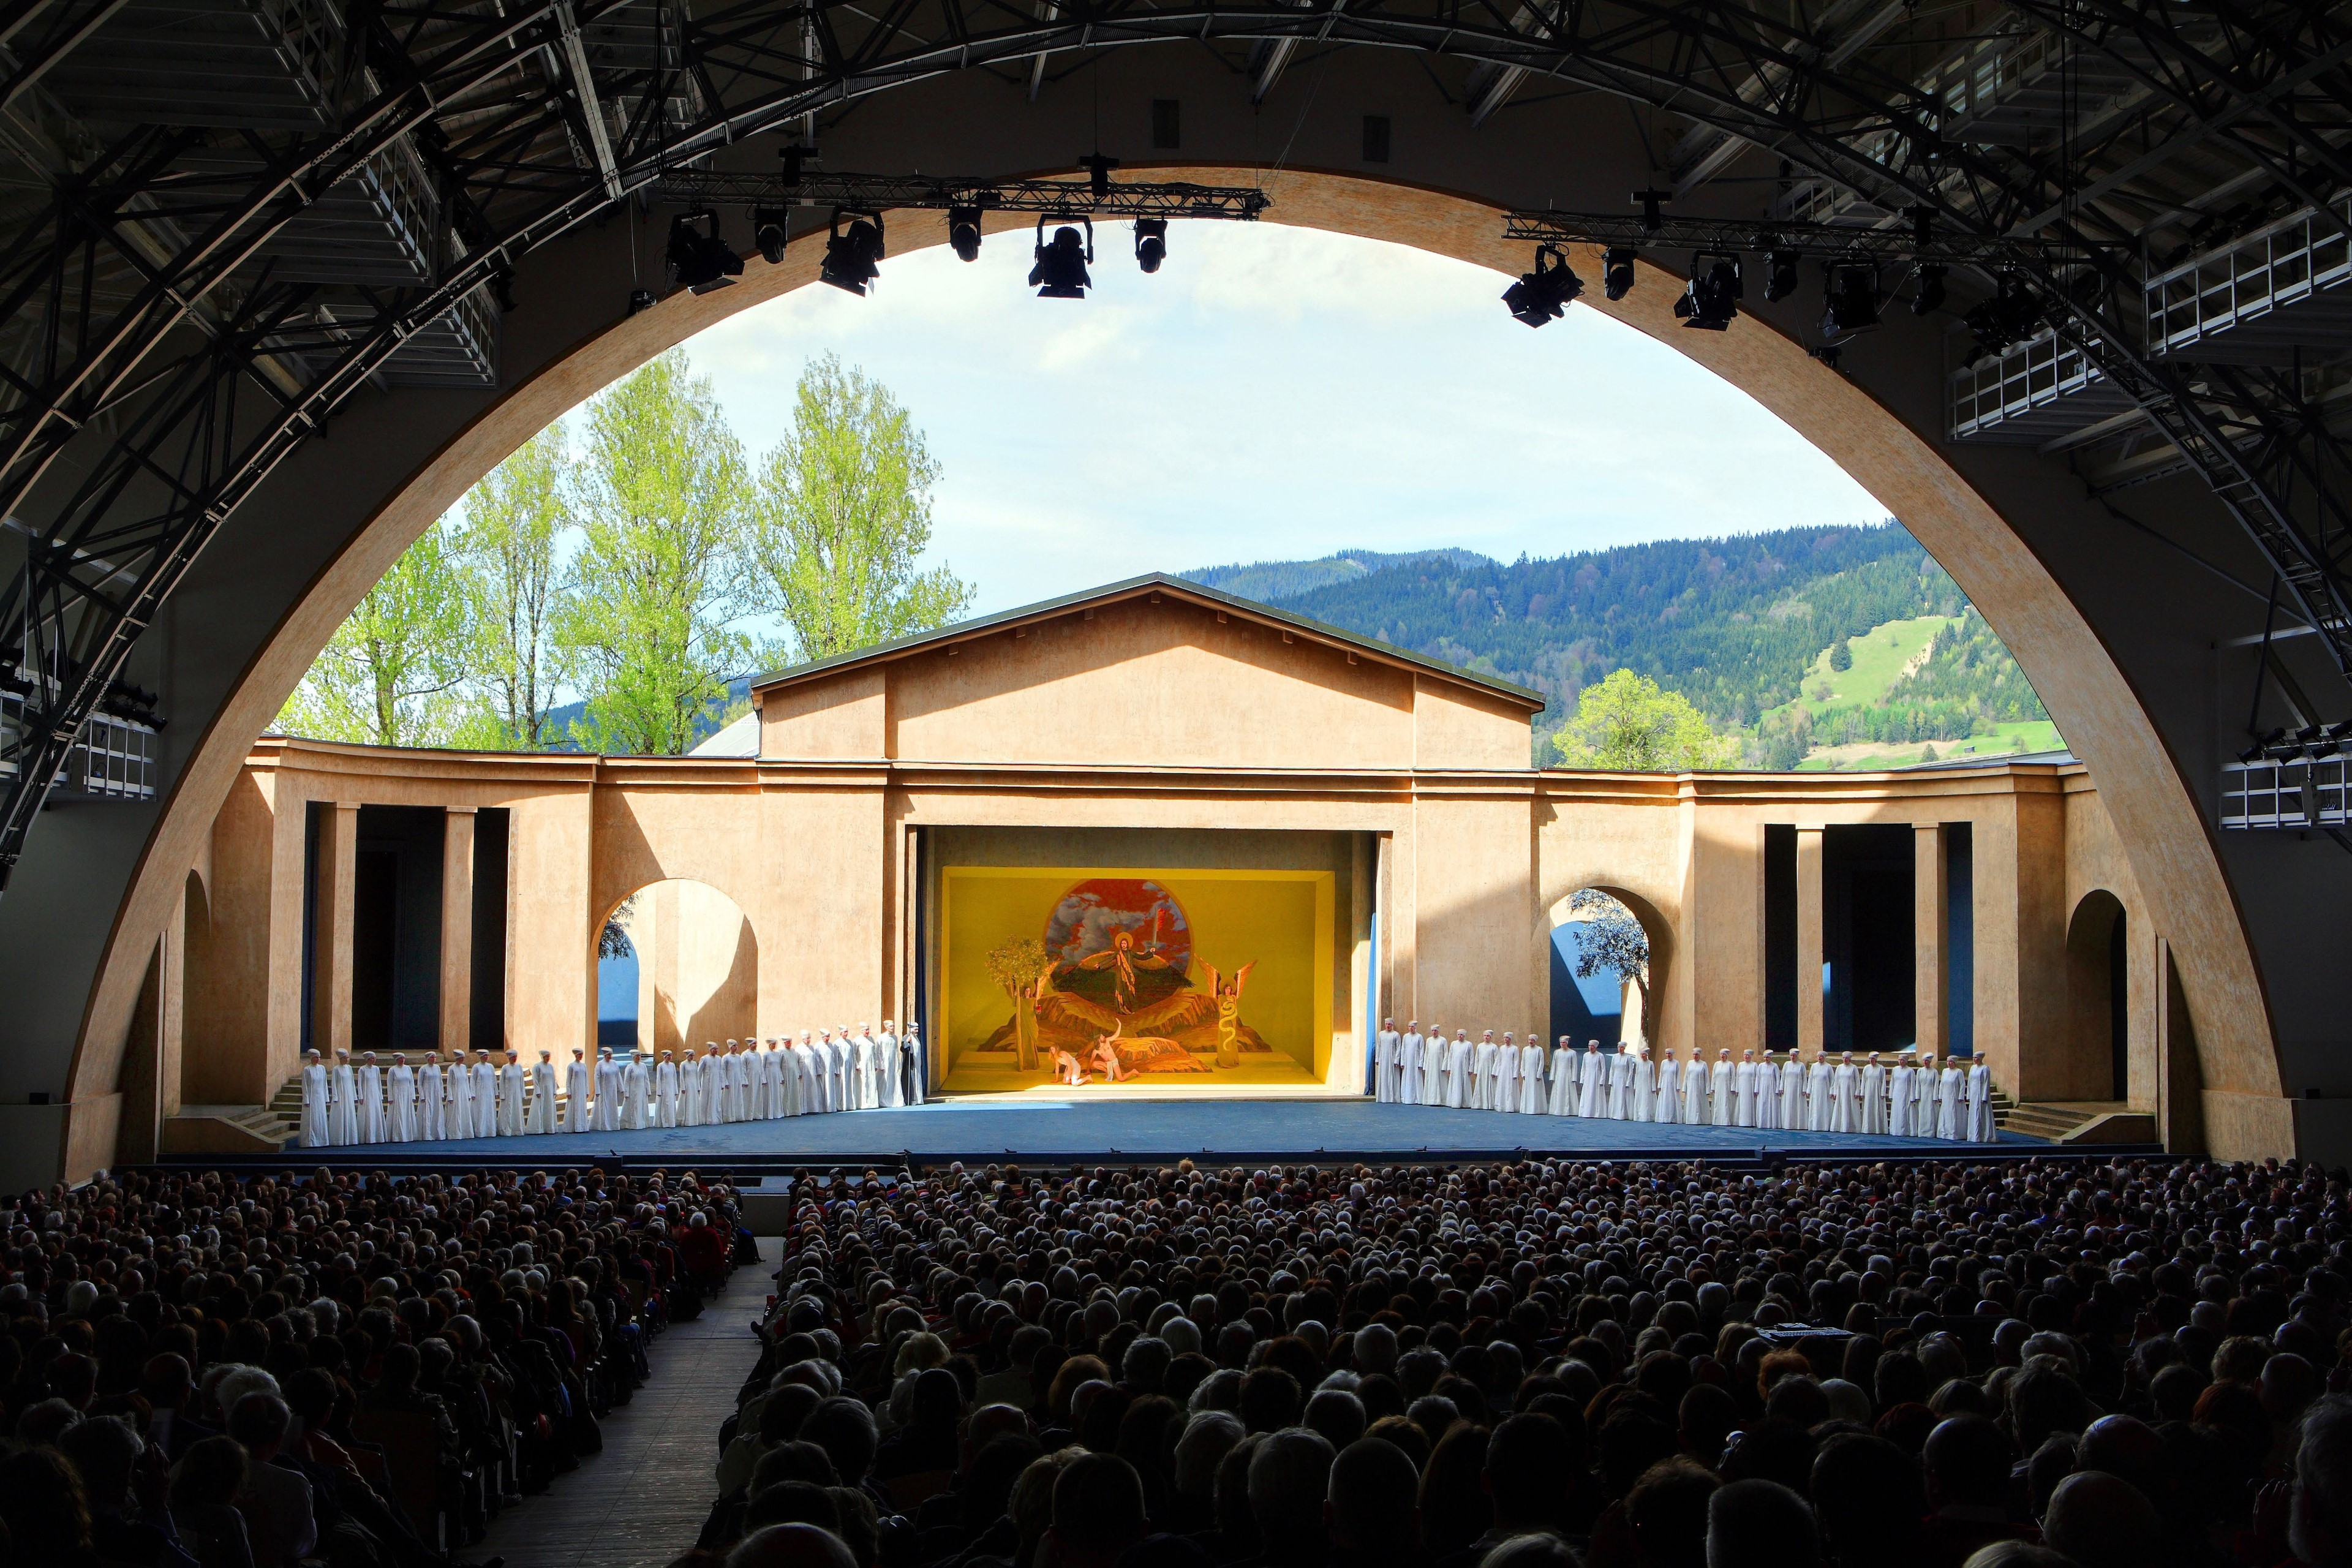 The Passionstheater in Oberammergau, where the legendary play is hosted each decade